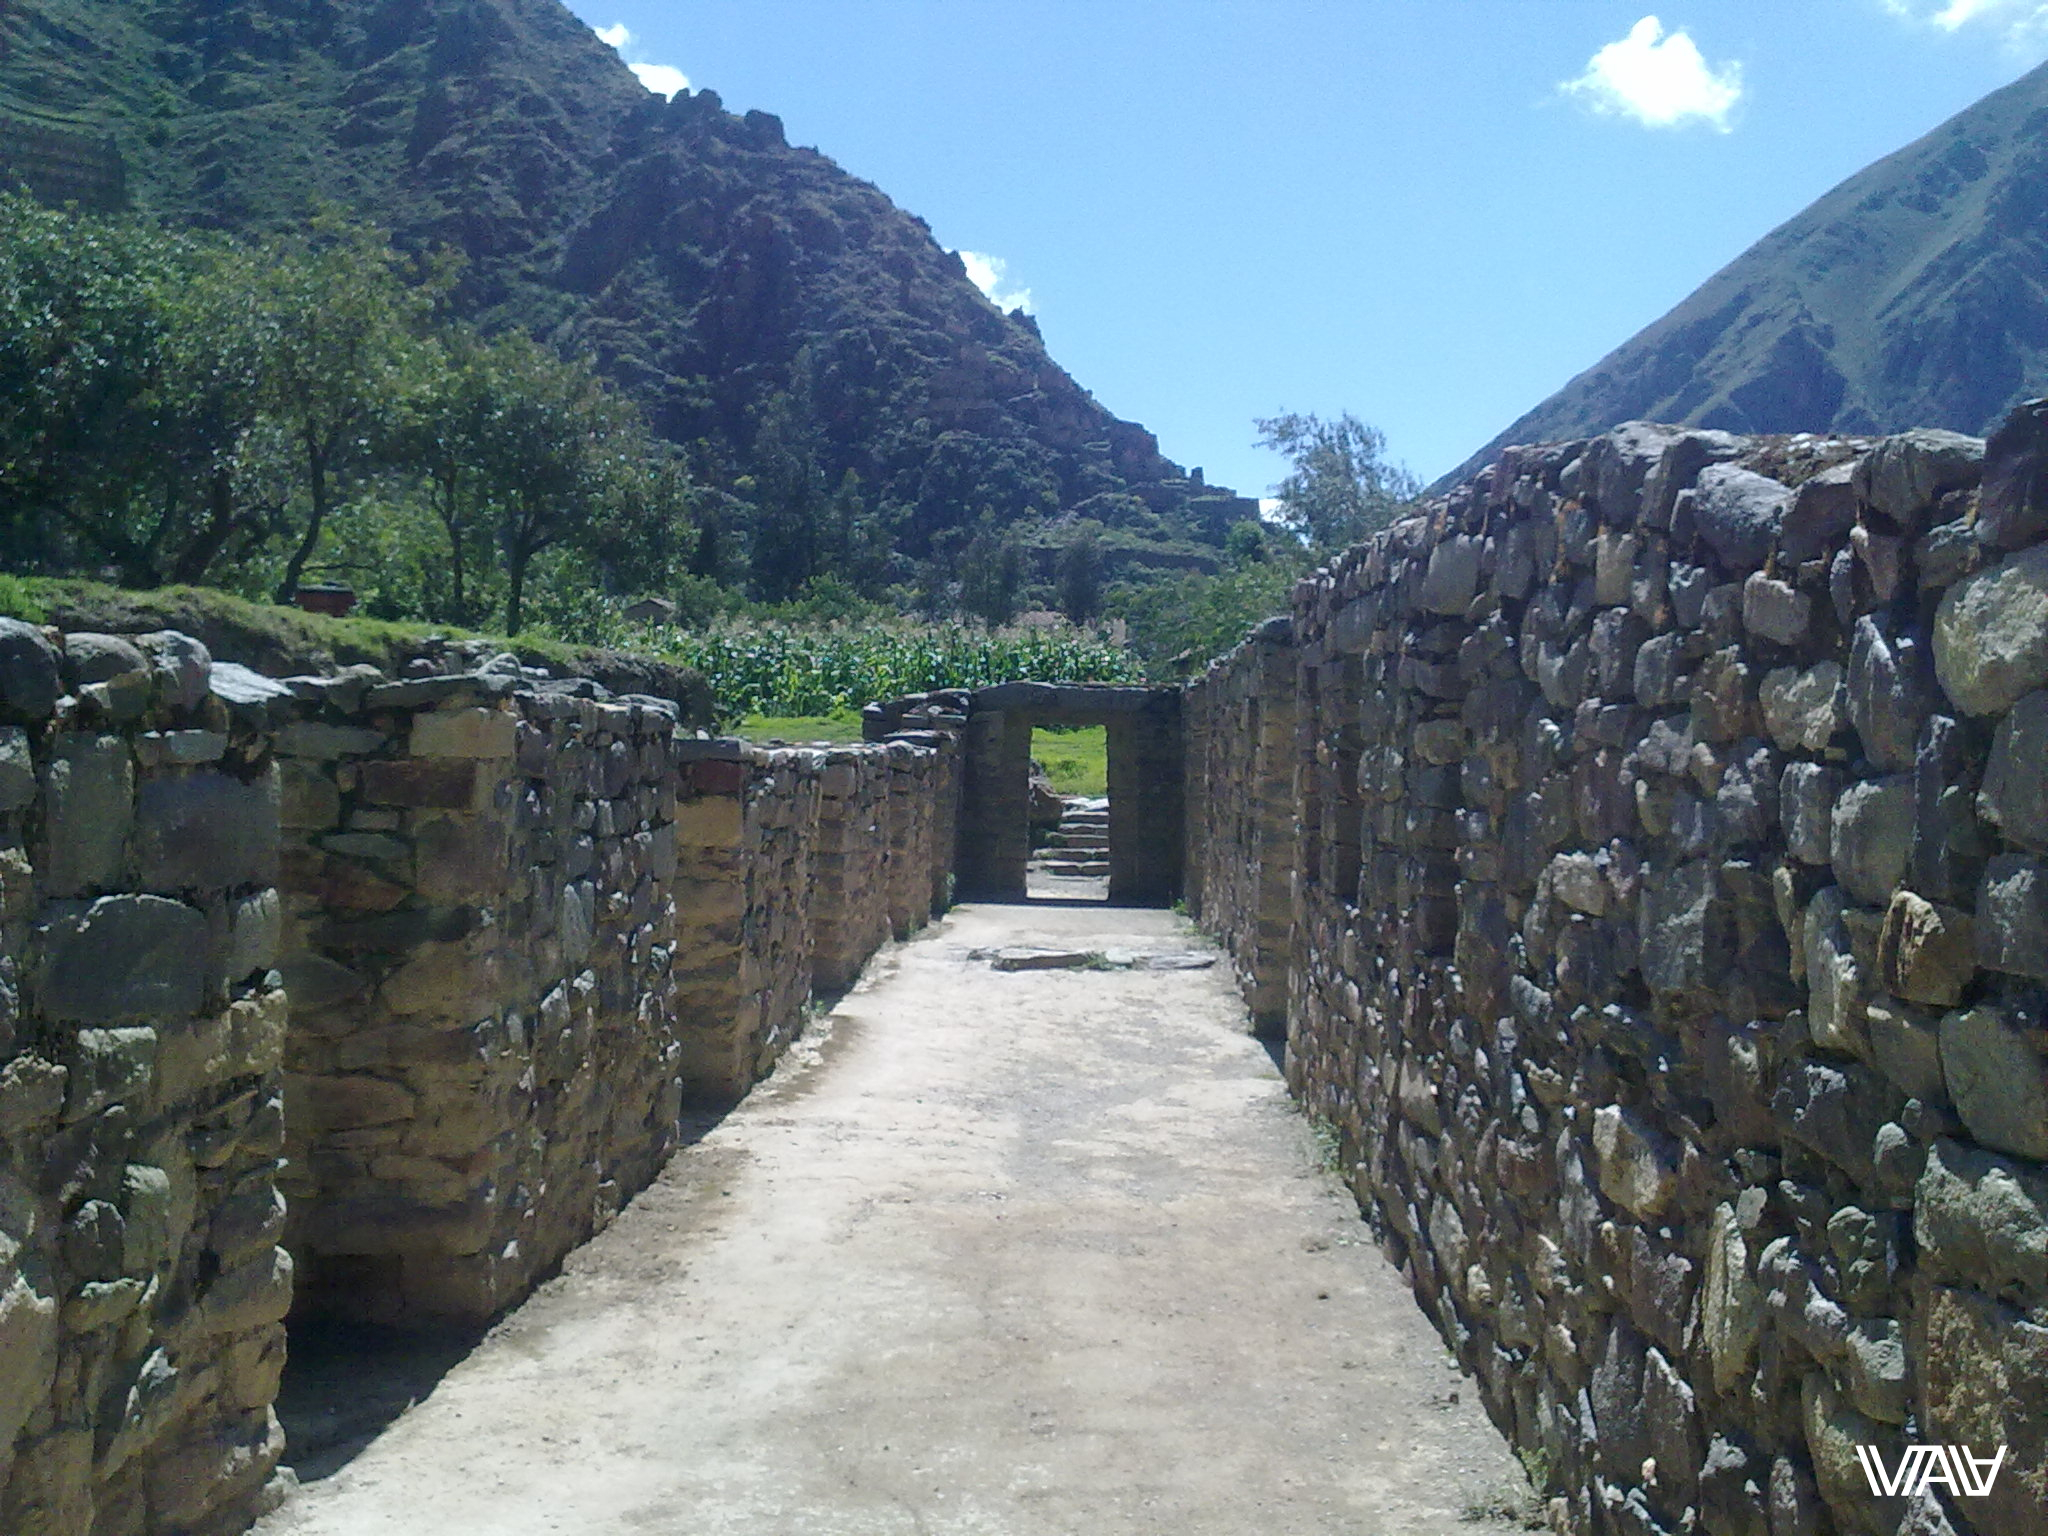 Sometime people walked along this corridor a thousand years older than us. Do the stones remember everything in the city of Oyantaytambo in Peru.